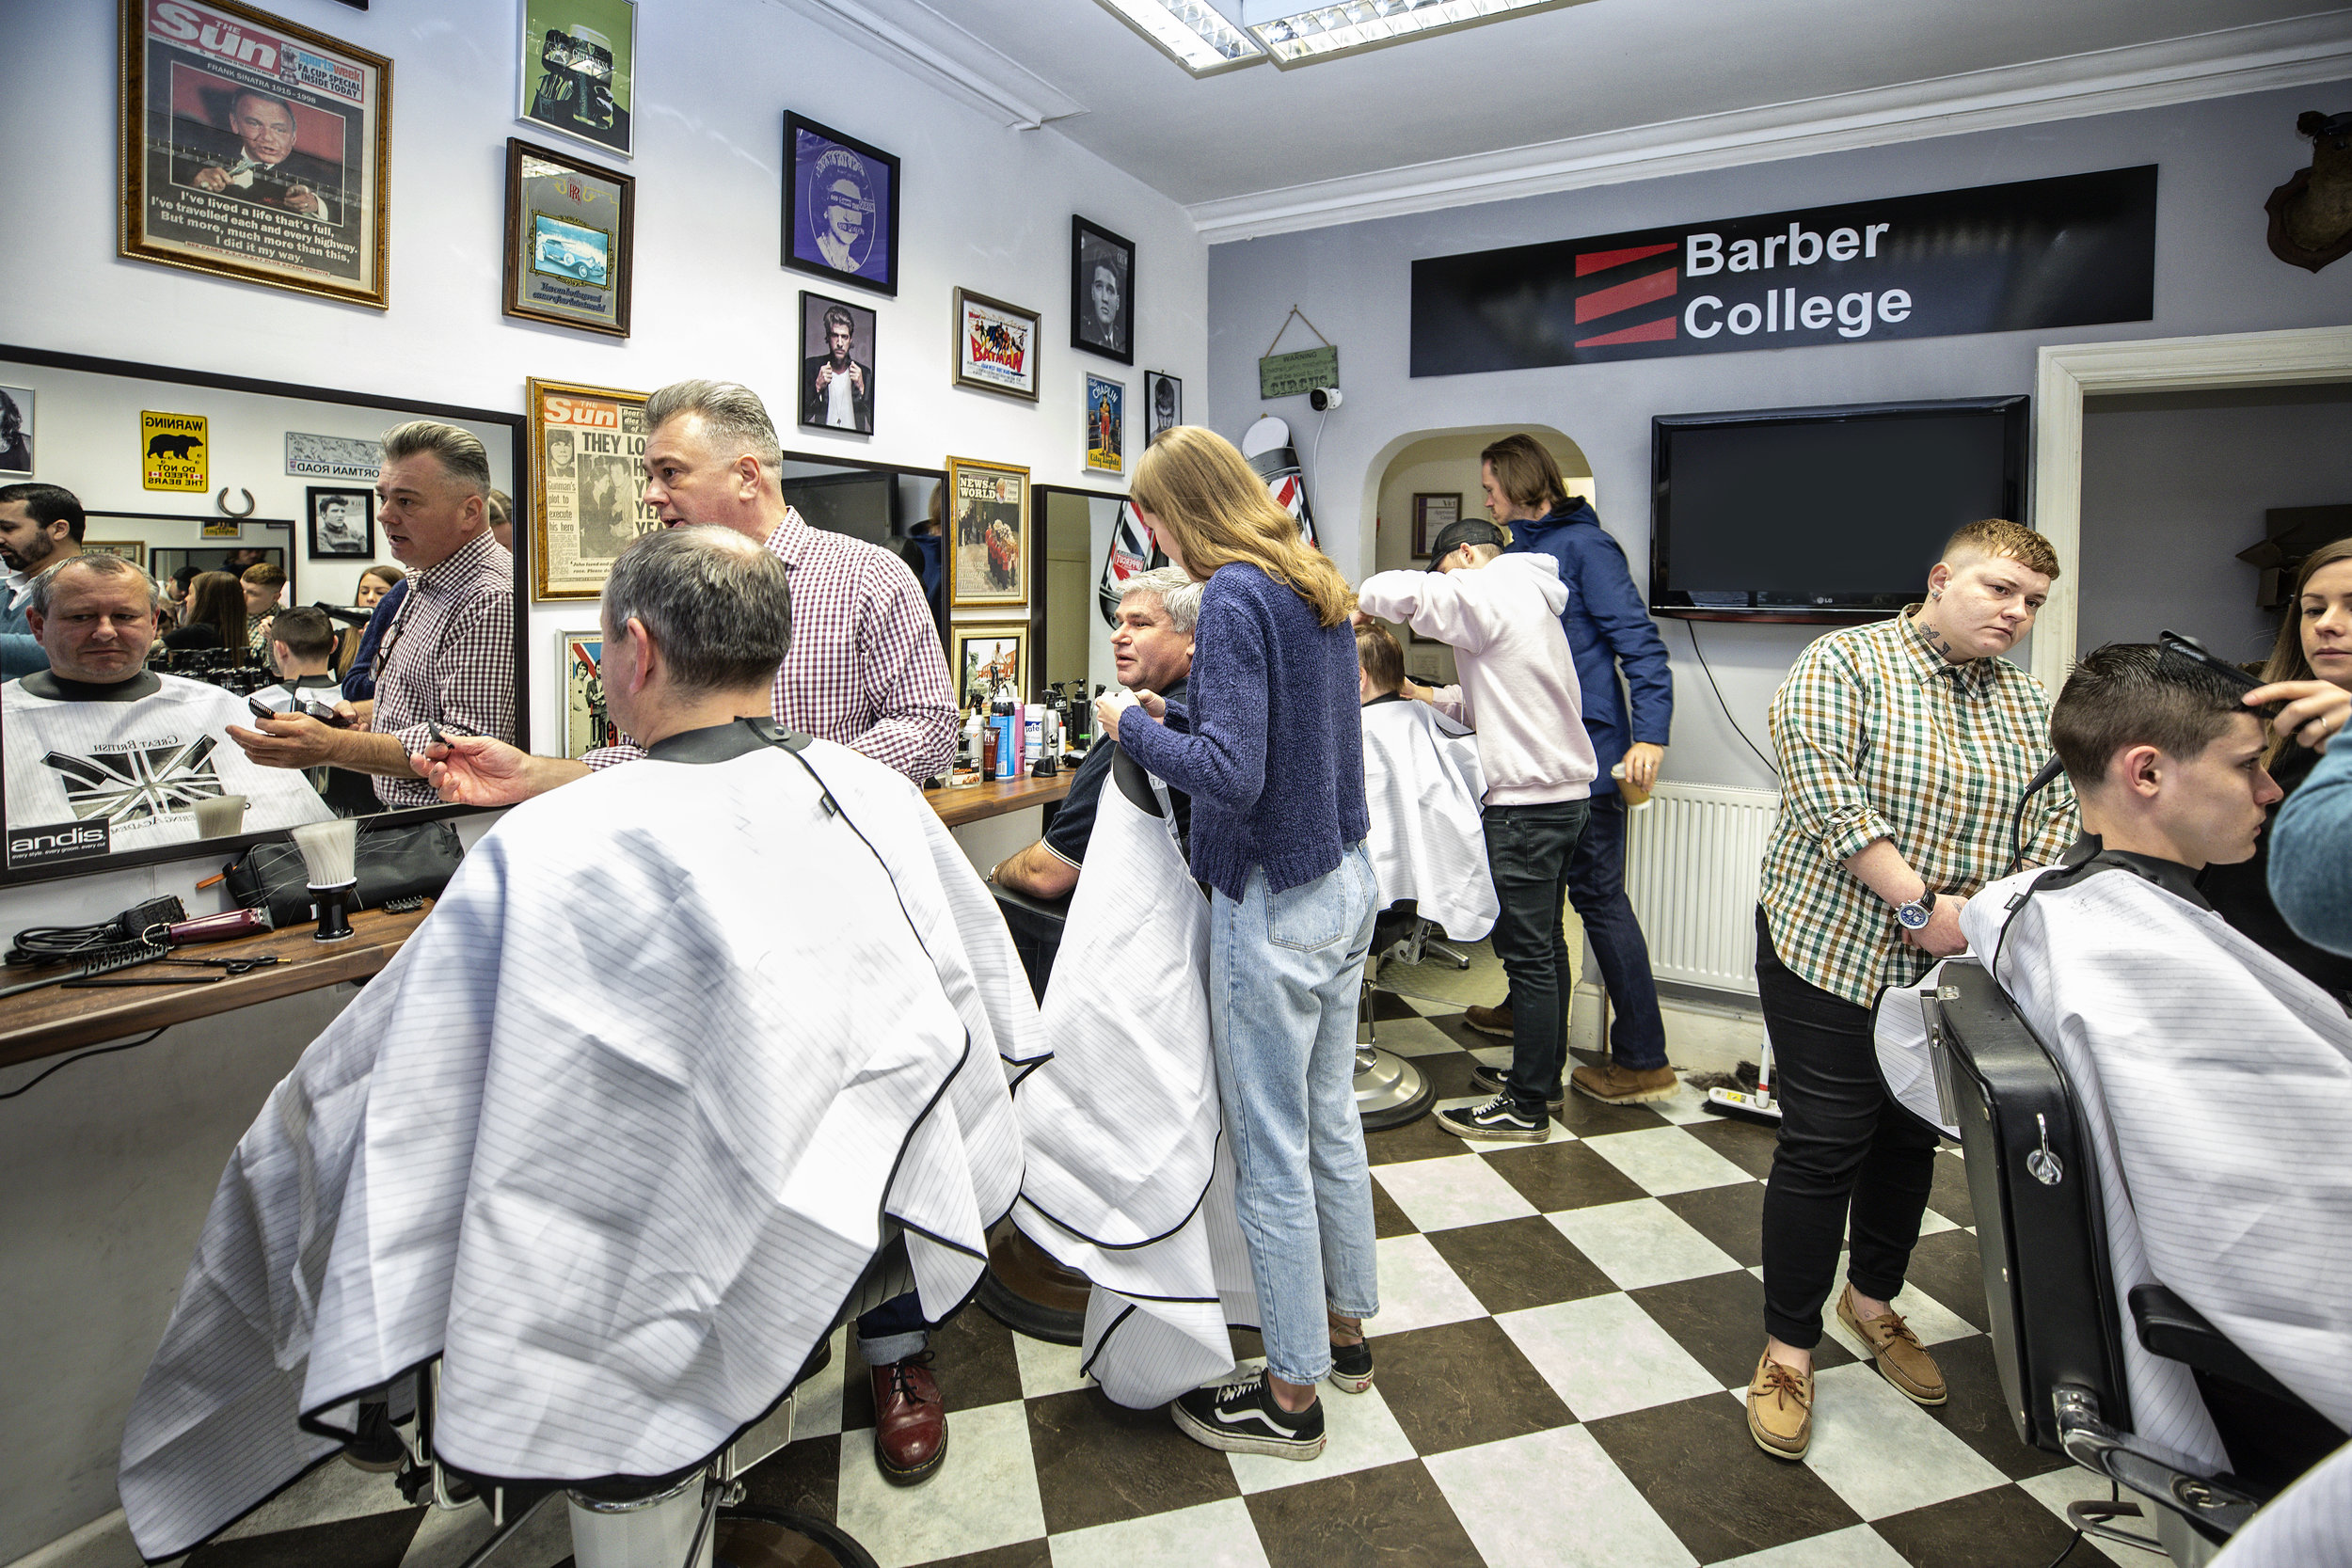 Apprenticeships - Earn as you learn when completing a barbering apprenticeship